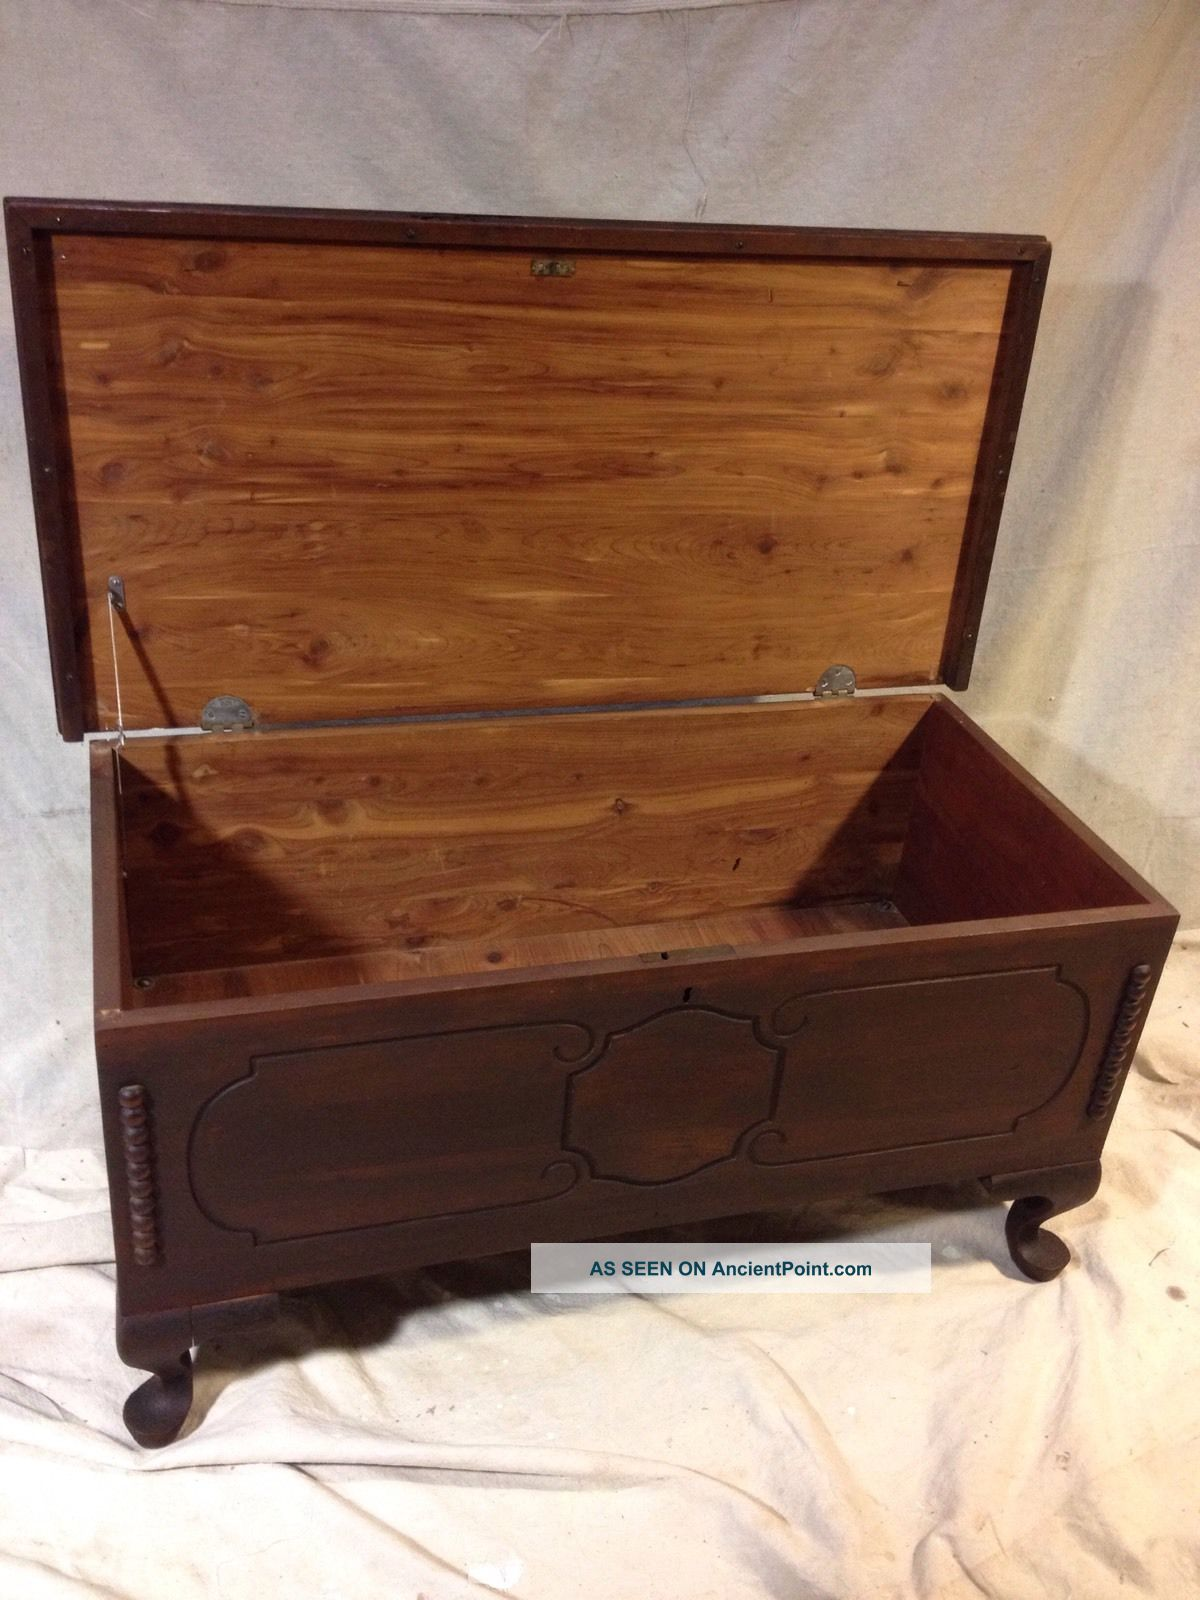 Chest Antique Solid Cedar See12pix4 Size&etc.  Ships Greyhound Exprs$69.  Make Offer 1900-1950 photo